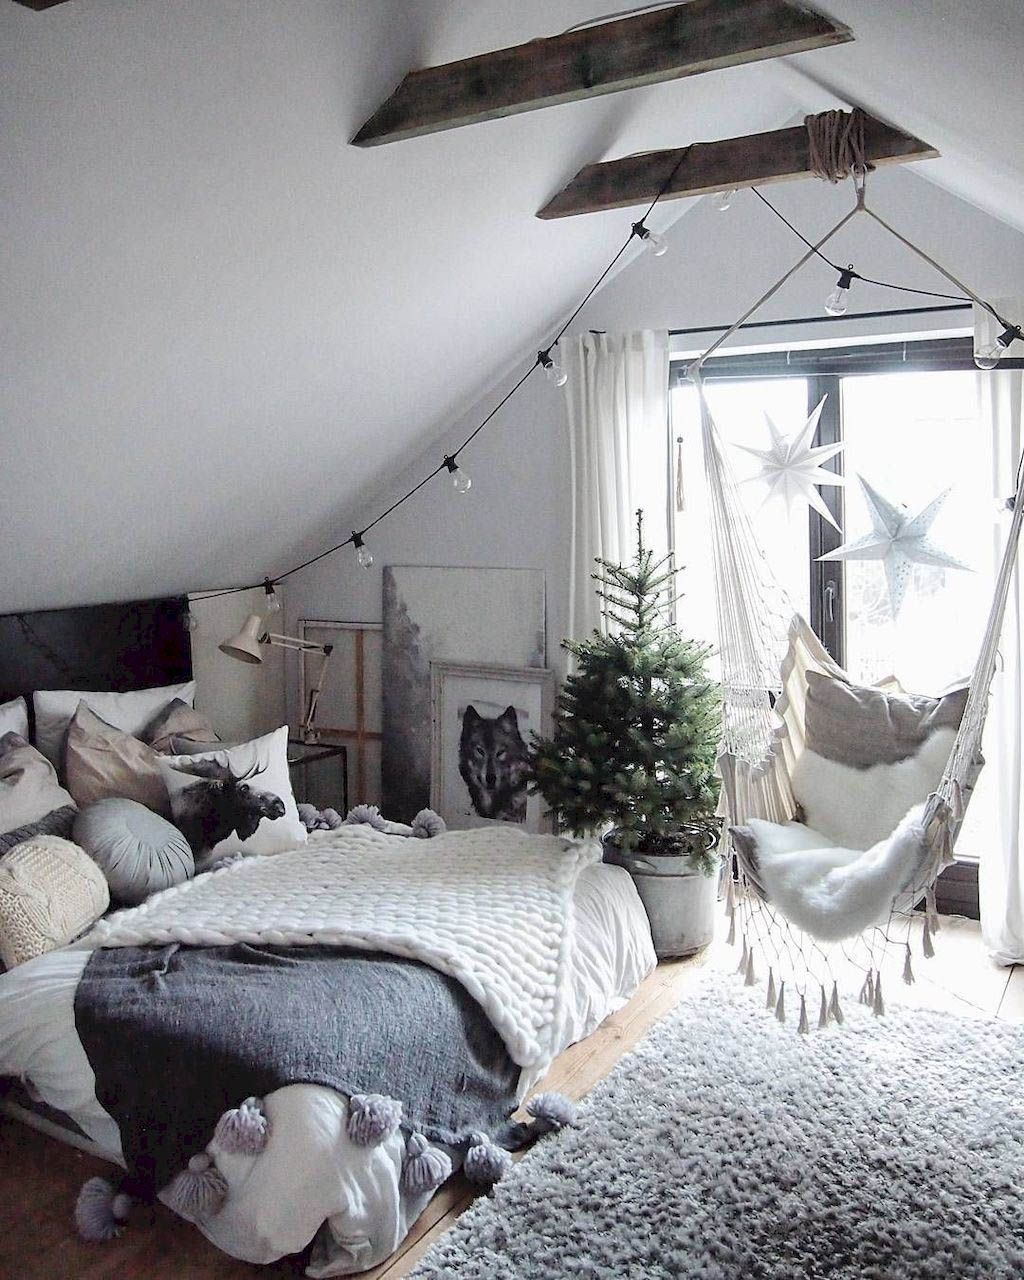 34 The Best Attic Bedroom Ideas To Maximize Your Home Room Inspiration Bedroom Room Ideas Bedroom Aesthetic Bedroom